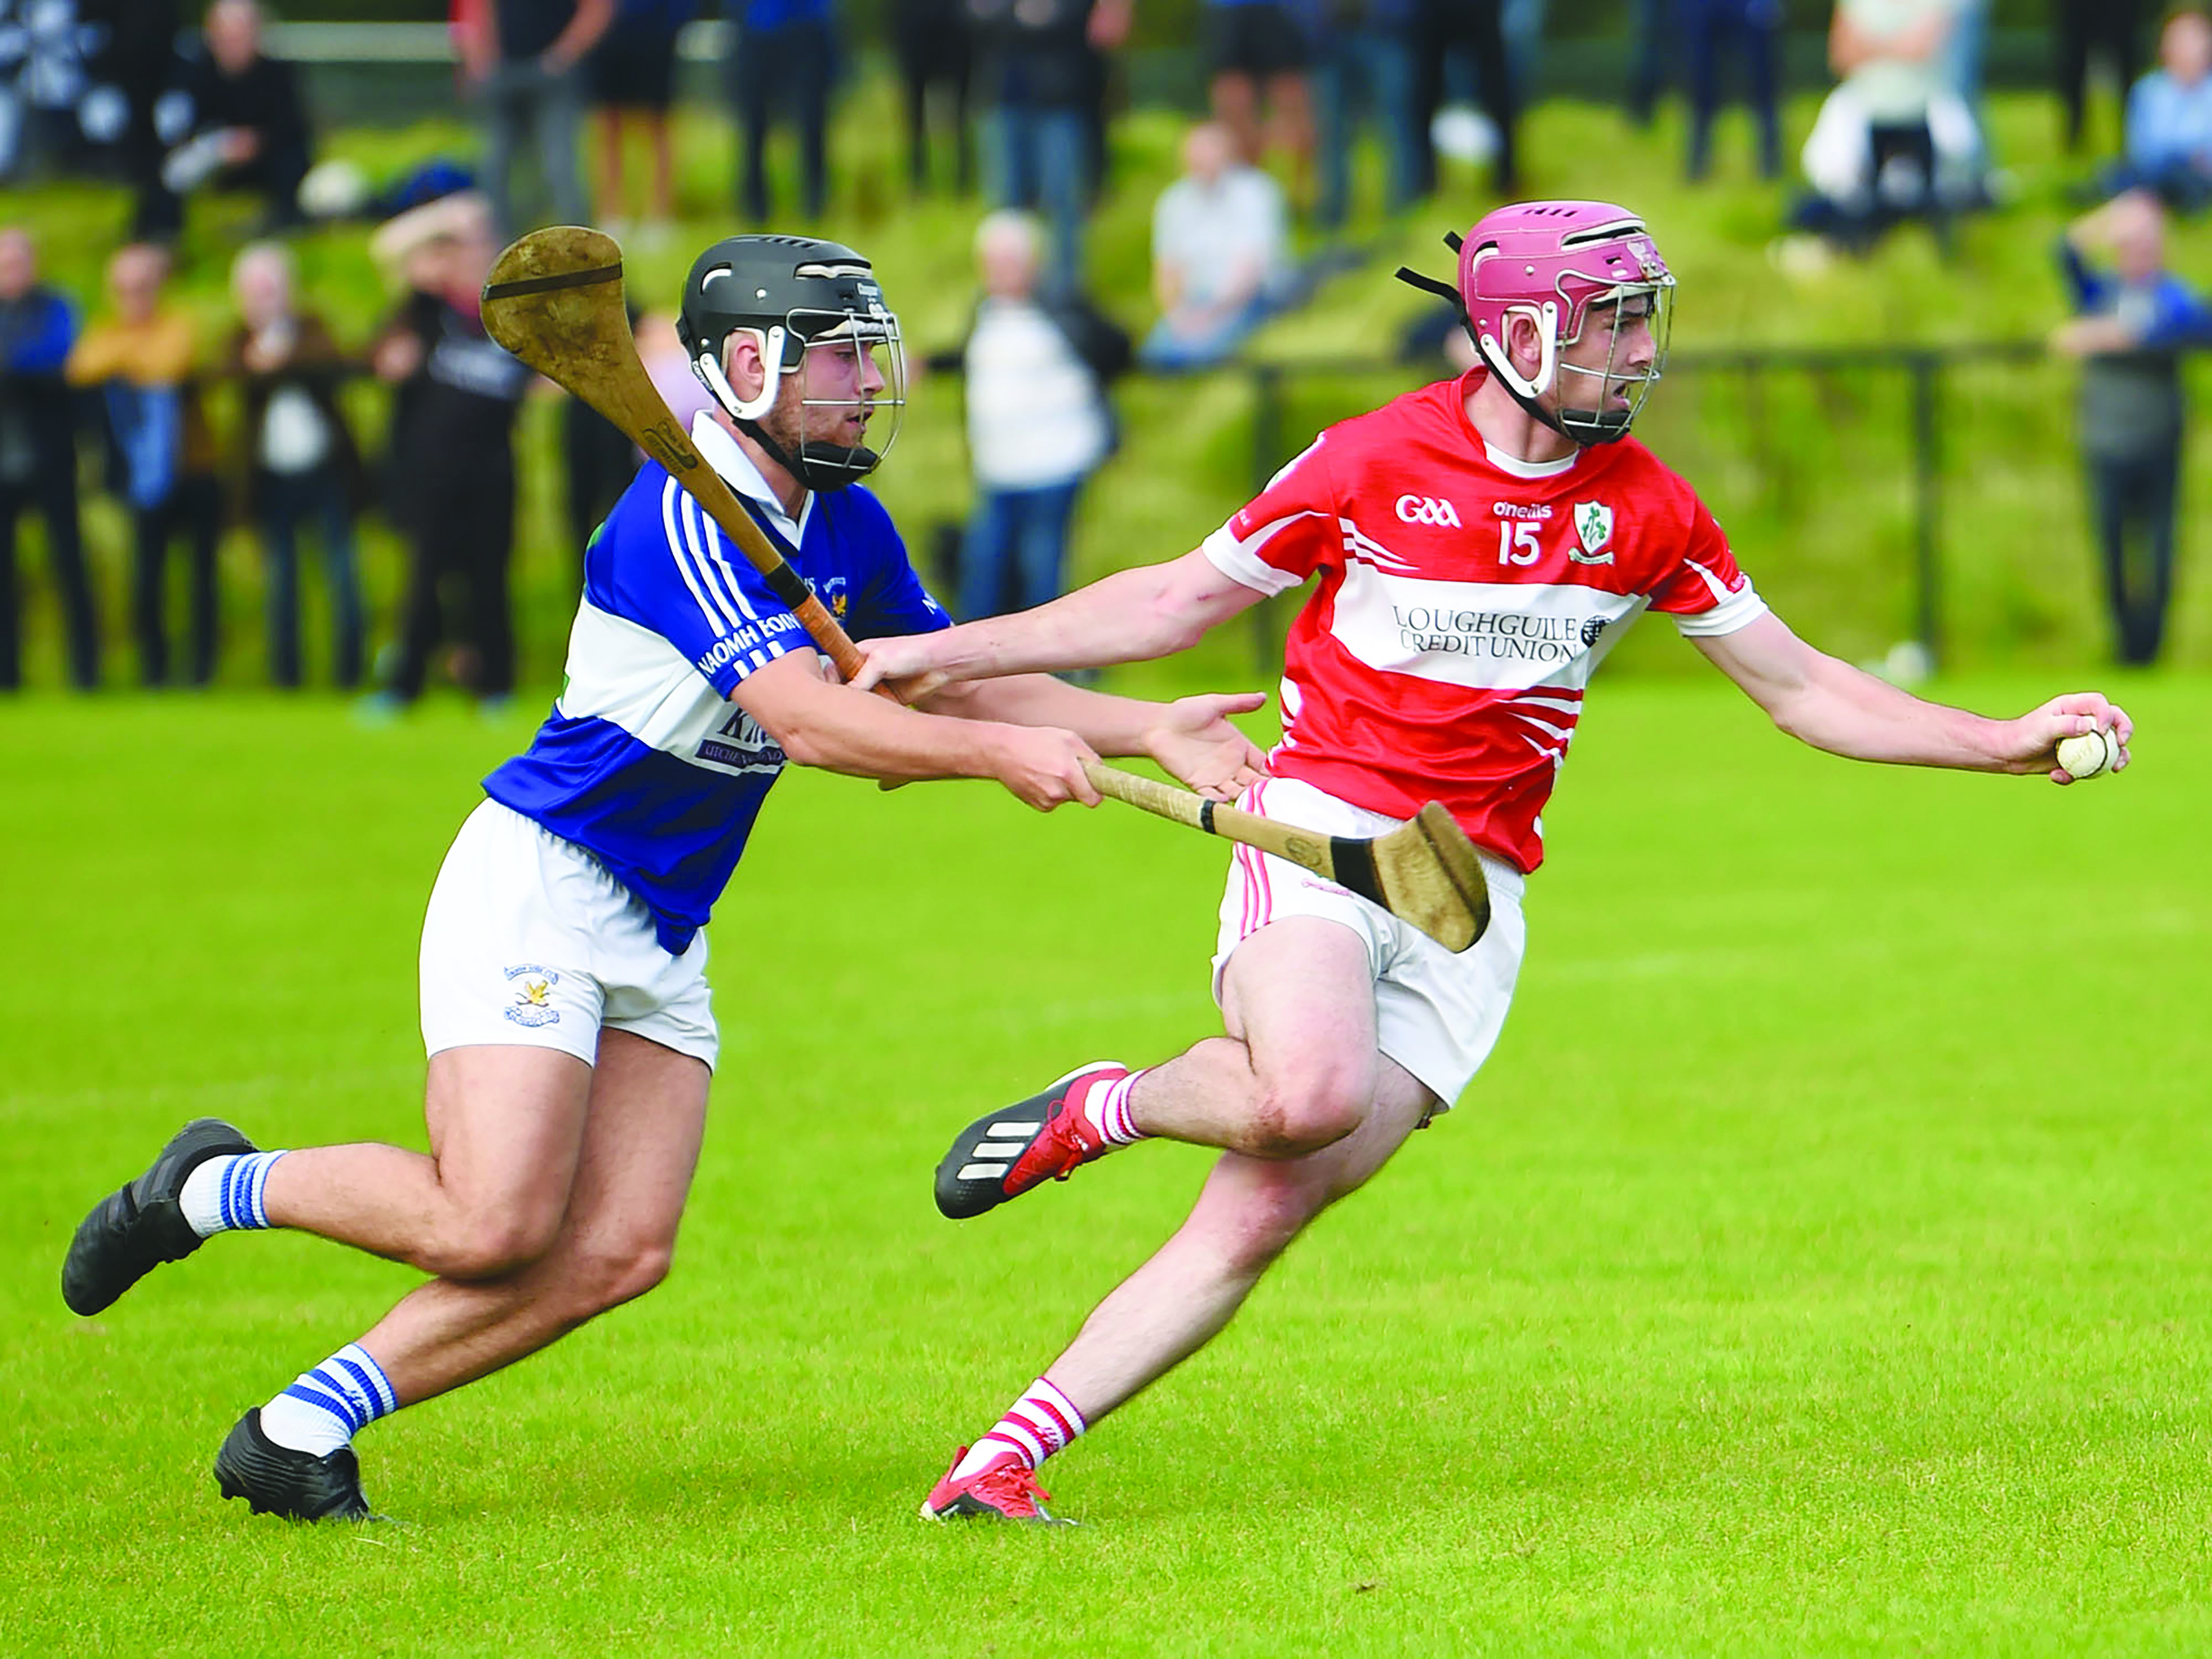 Loughgiel overcame last year's semi-final against St John's after extra-time and the sides meet again this Sunday with a place in the last four up for grabs with Portglenone now hosting the game at 7.30pm